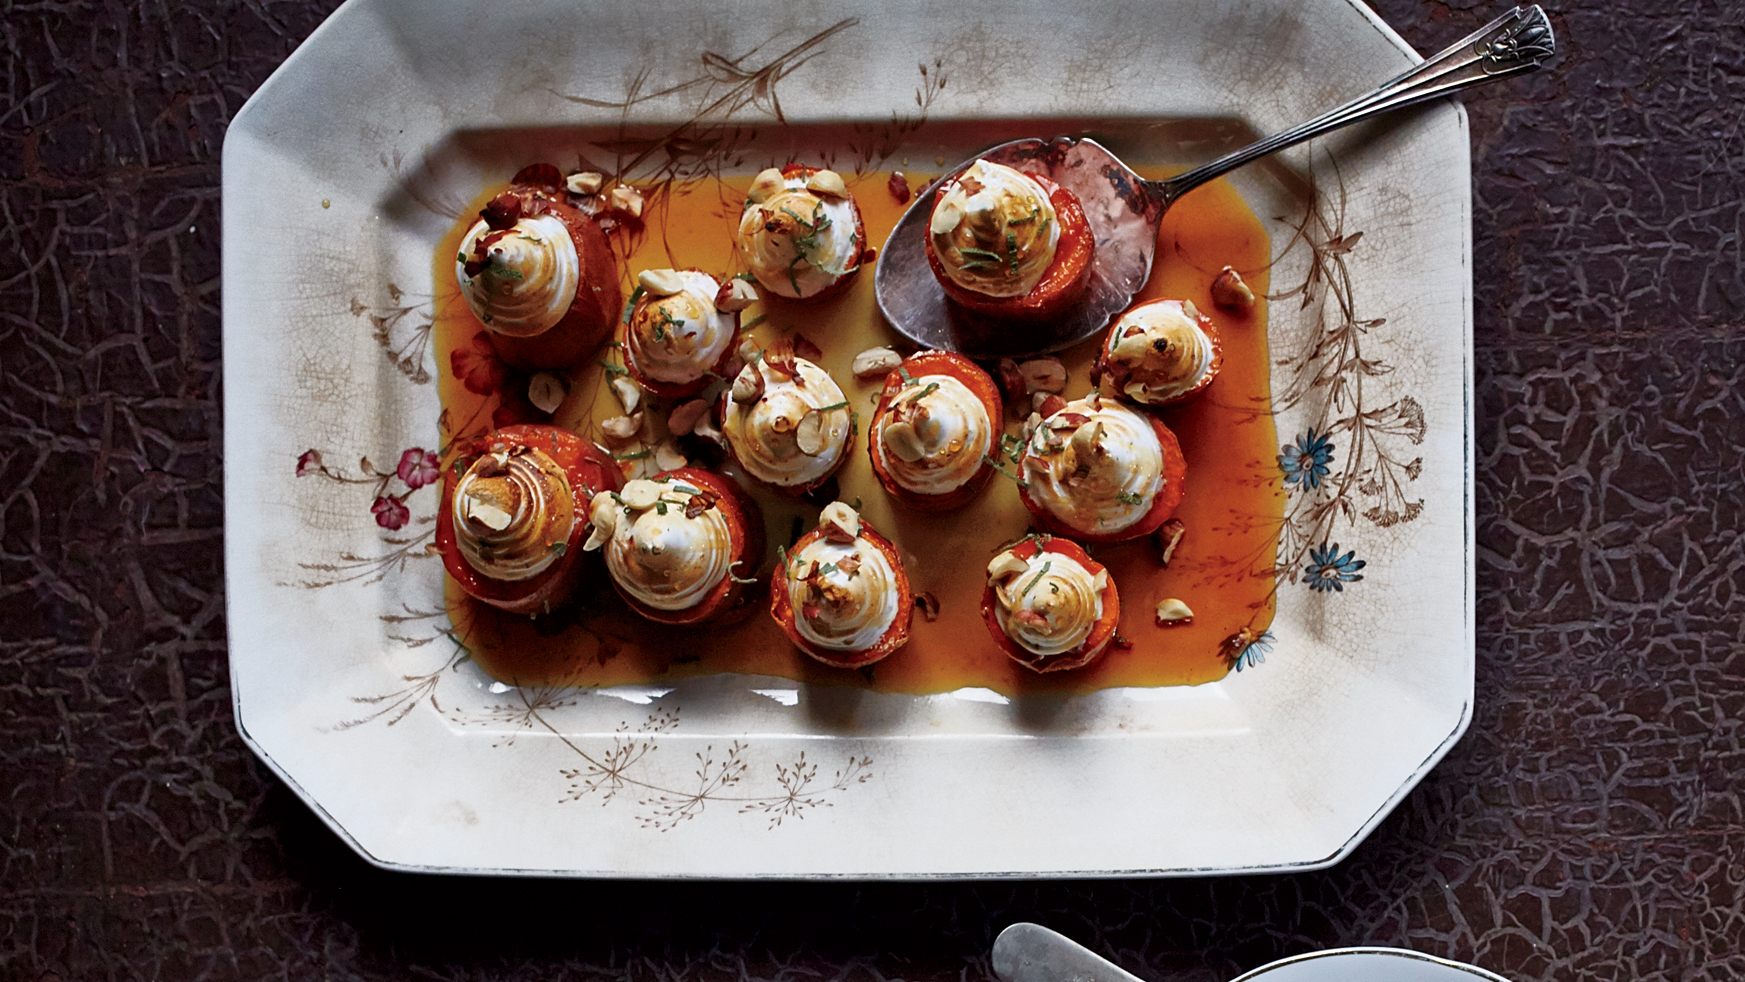 Sweet Potatoes with Toasted Marshmallow Swirls